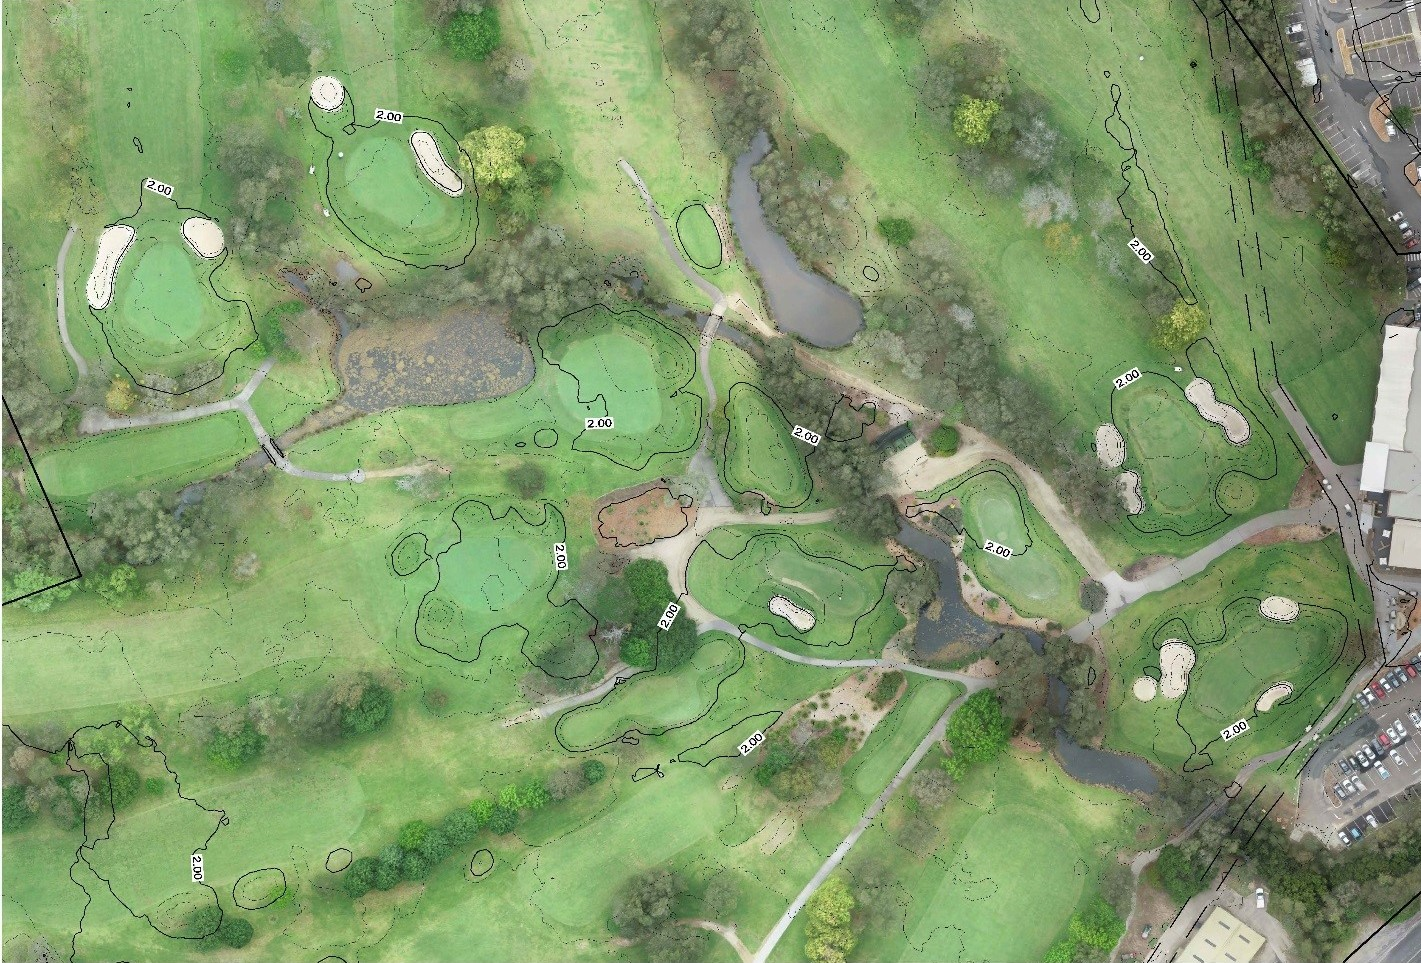 Topographical Survey of a Golf Course